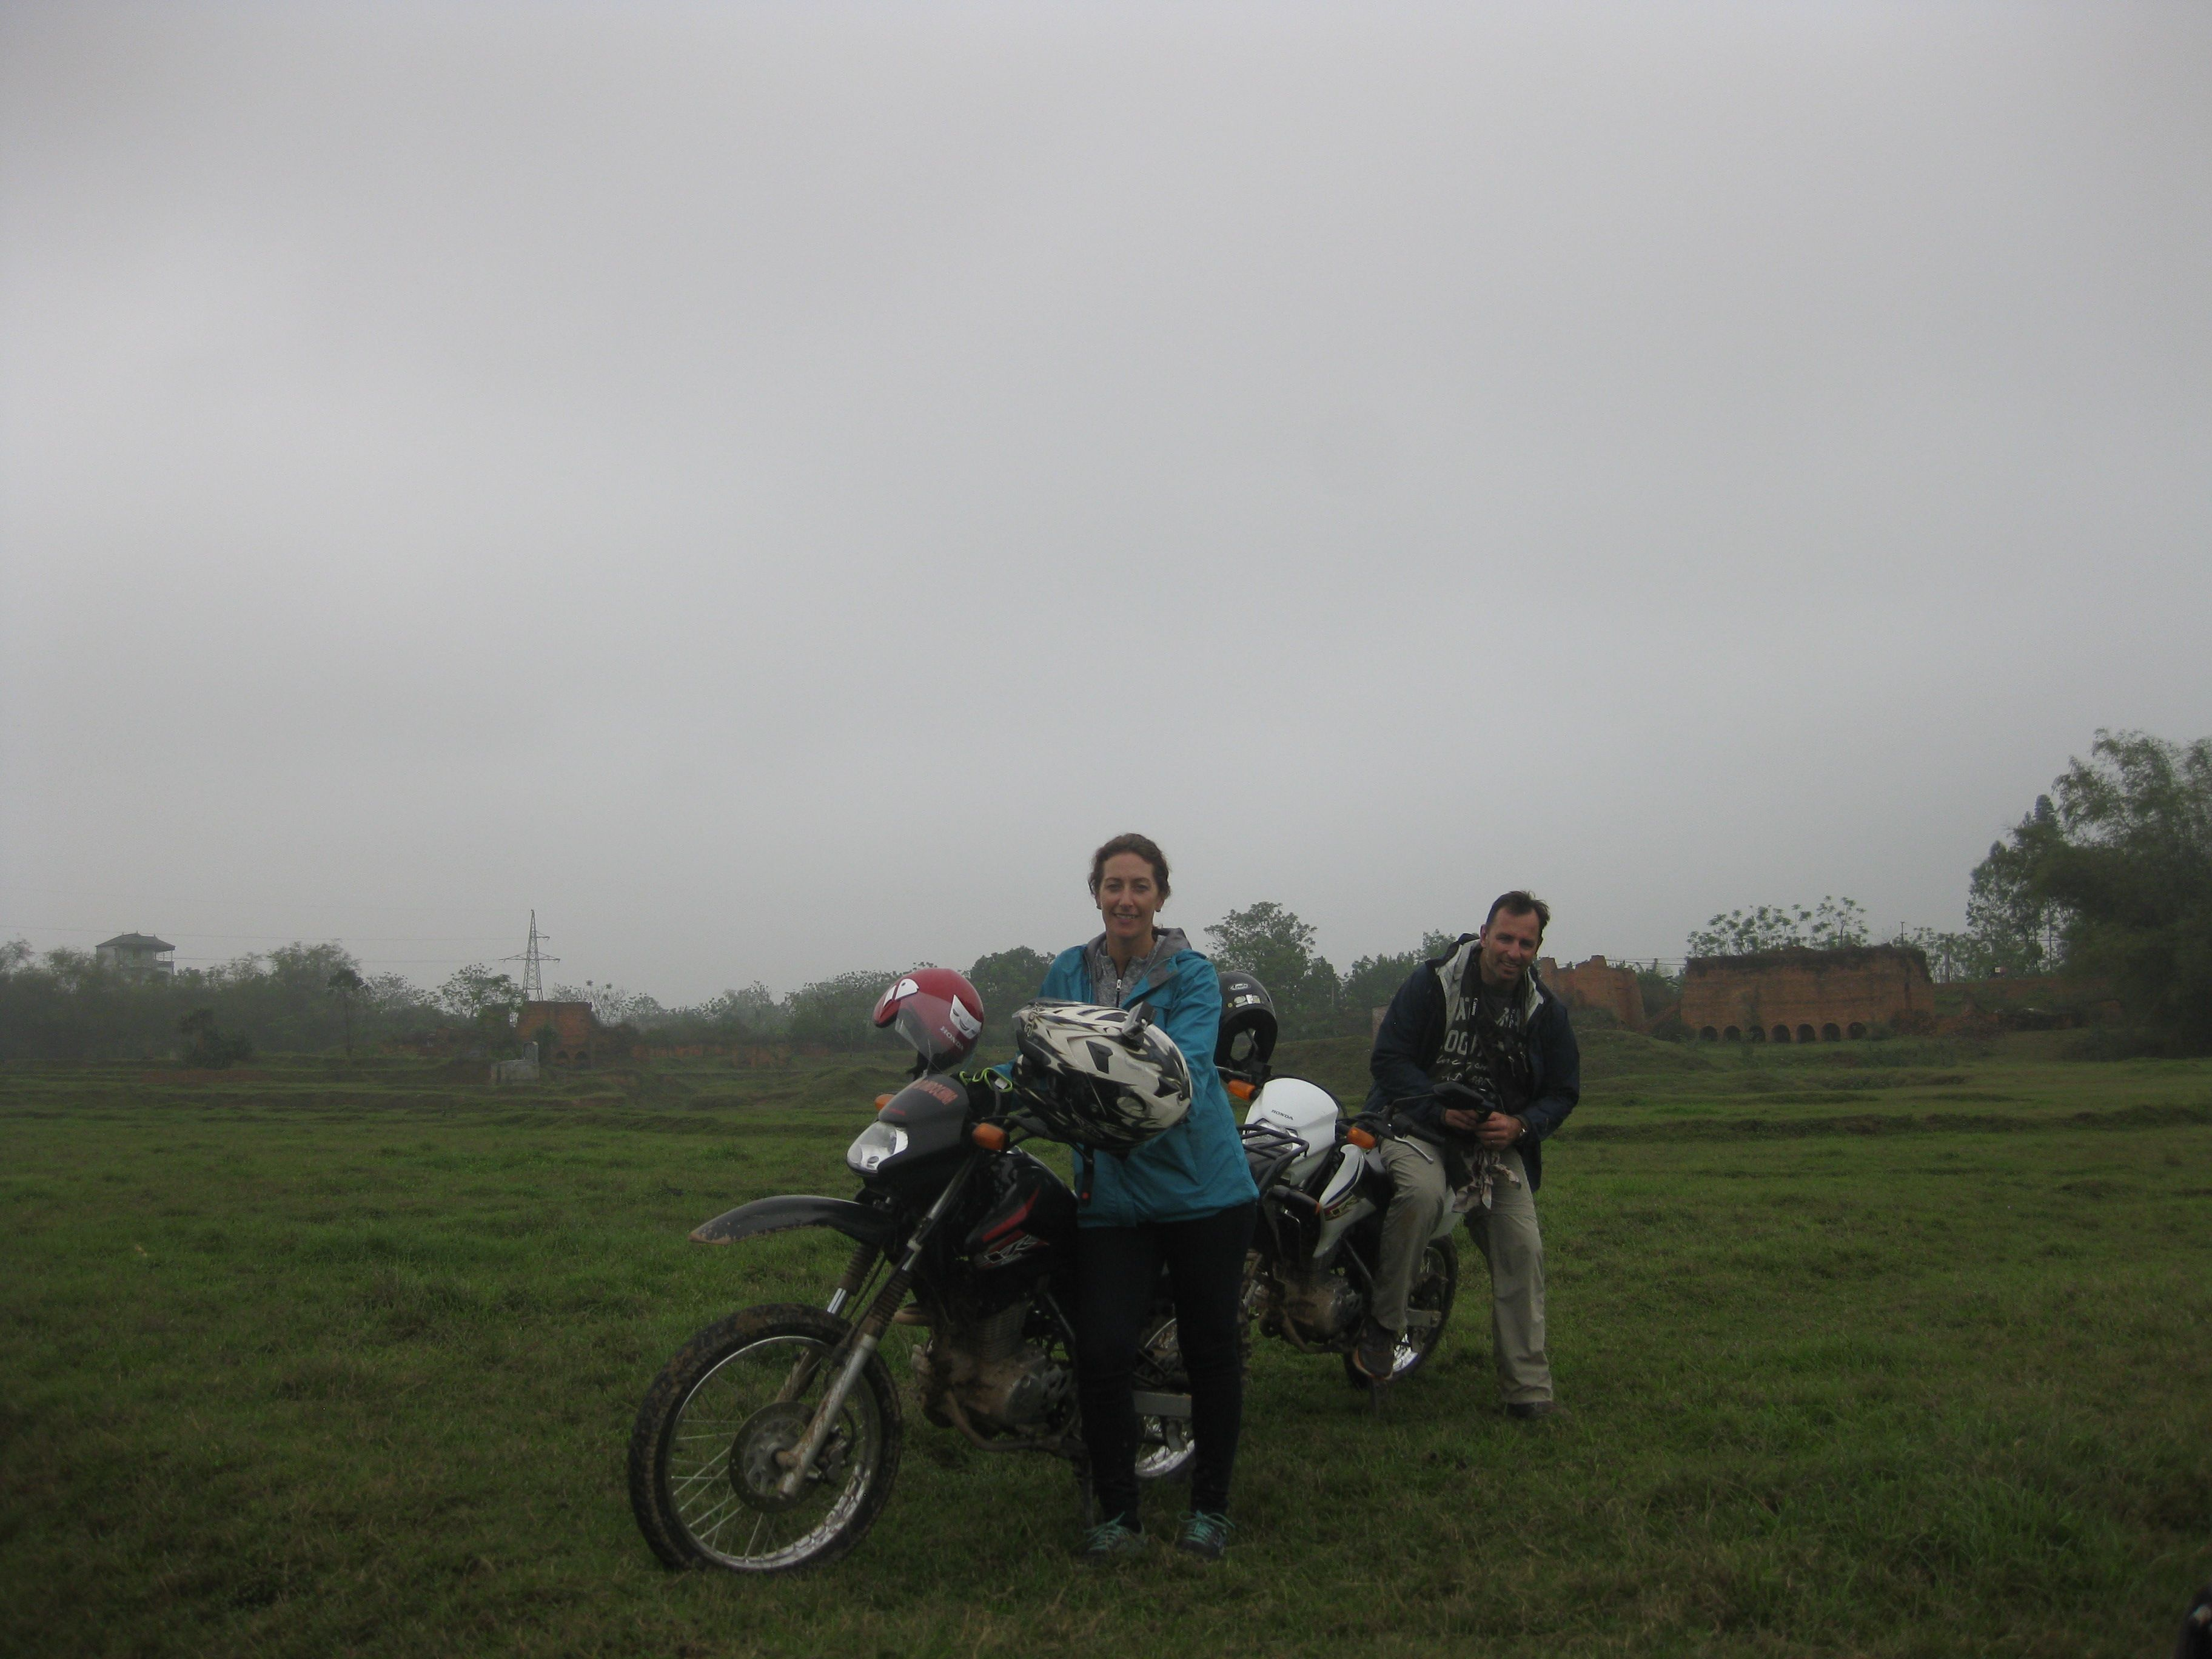 If you are a rider and looking for adventure, you can try our Vietnam Motorbike Tours, We are a Northern based and is Vietnam's leading premier motorbike adventure company. It is professionally run and has quality premium and affordable tours all year round. # VIETNAM #MOTORBIKE #TOURS - http://vietnammotorbikeride.com/